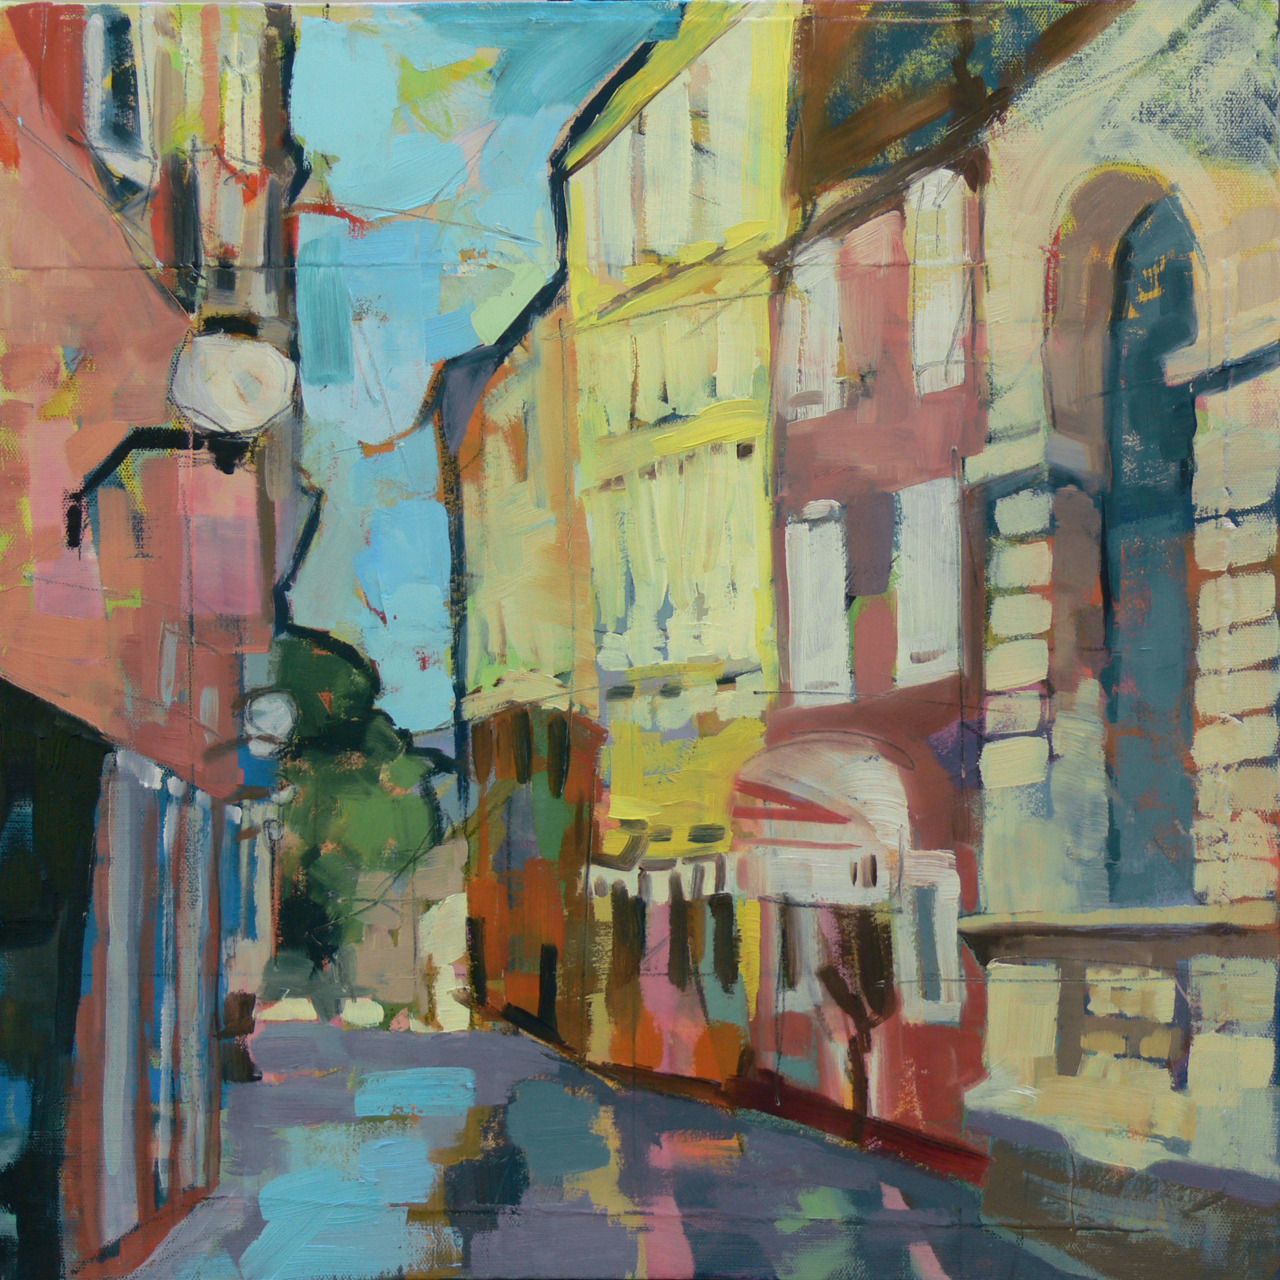 "18"" x 18"" oil on canvas   After the rain, a street in Zadar.  The sun has just peeked back out and hit those two buildings in the back.  Don't you just want to duck under that red awning and grab an espresso?  Walk the city for a day?"